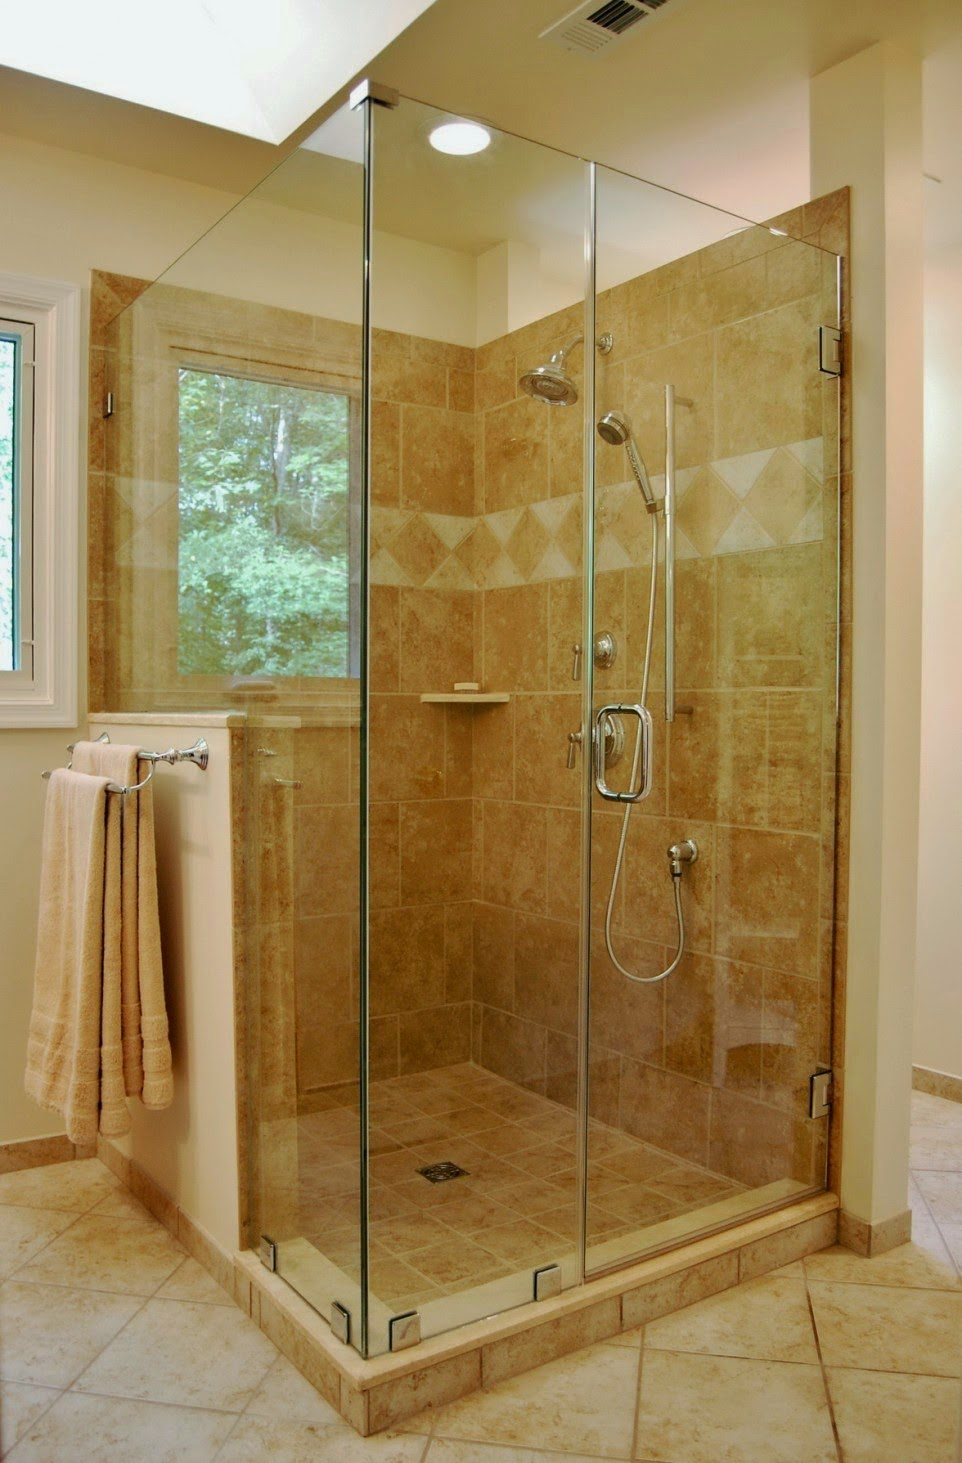 You Can Purchase Far More Affordable Frameless Shower Doors From Many Other Manufactures And Retailers They Be Purchased As Supply